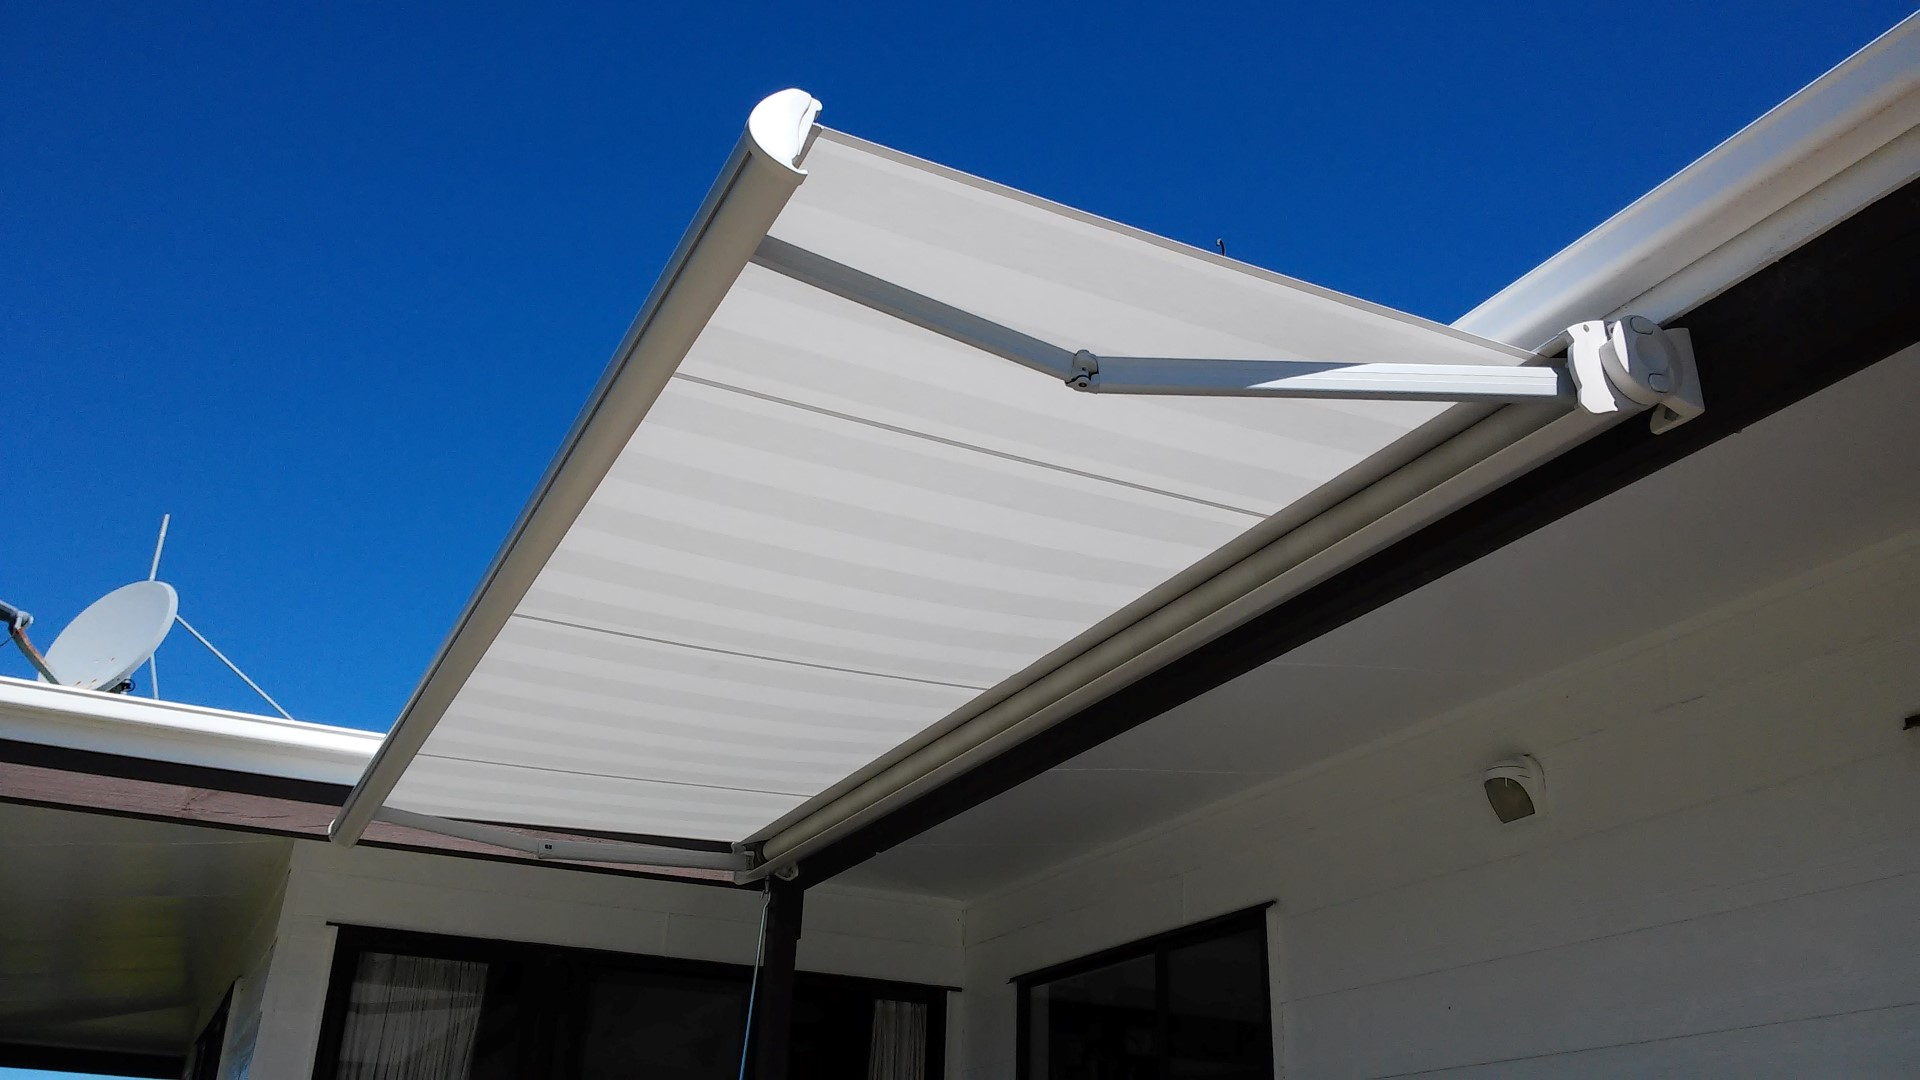 Awnings Plus Quality European Awnings In New Zealand